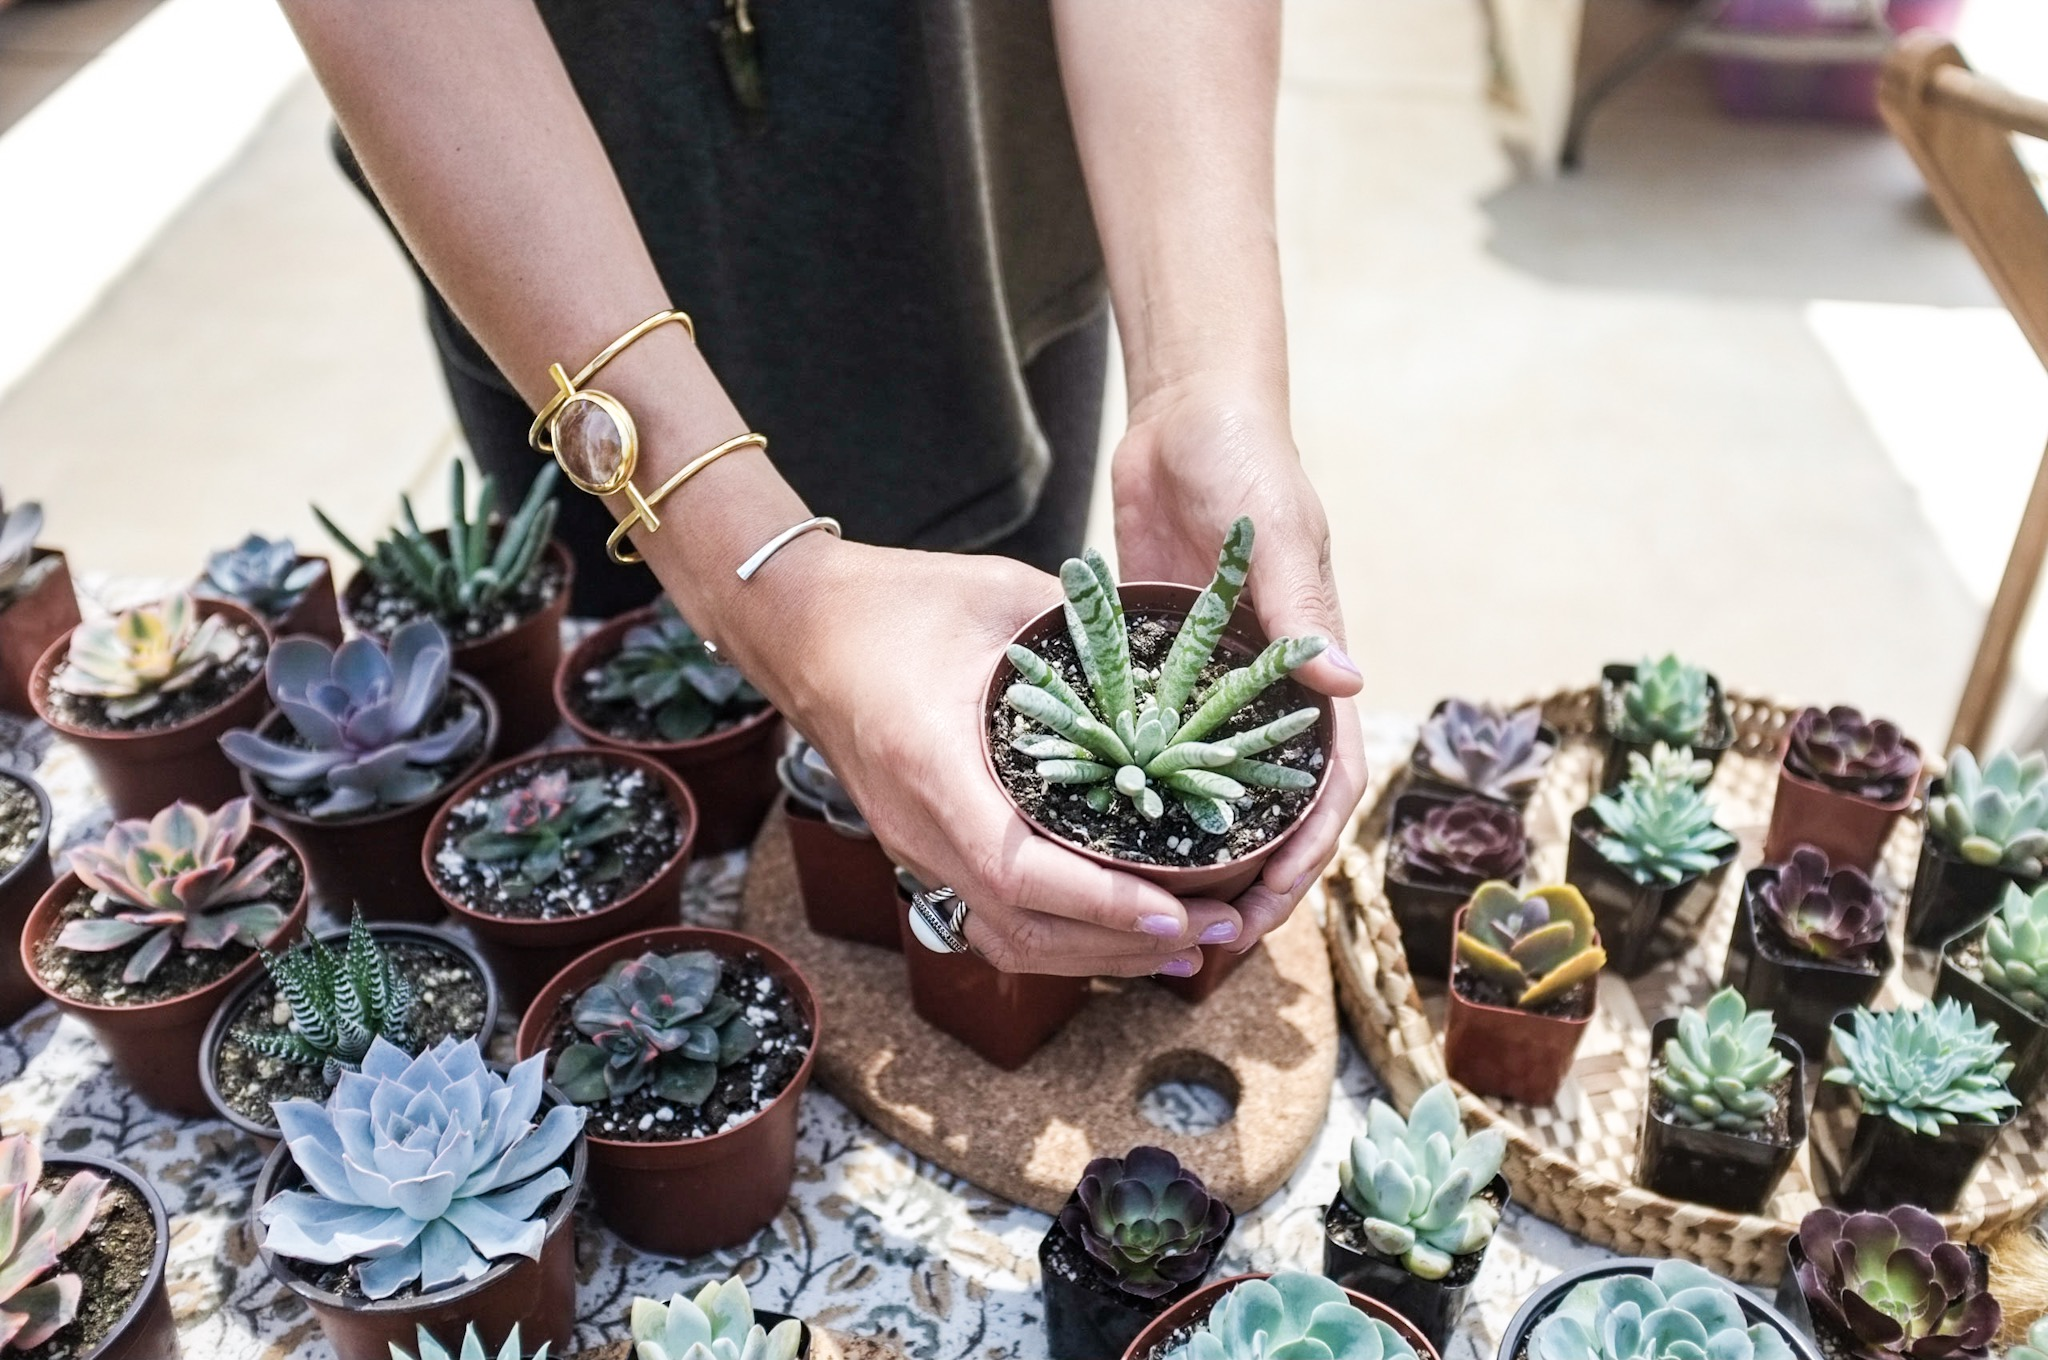 Beautiful & Diverse Succulent Plants - Our selection of species will delight with colors, textures, and shapes.